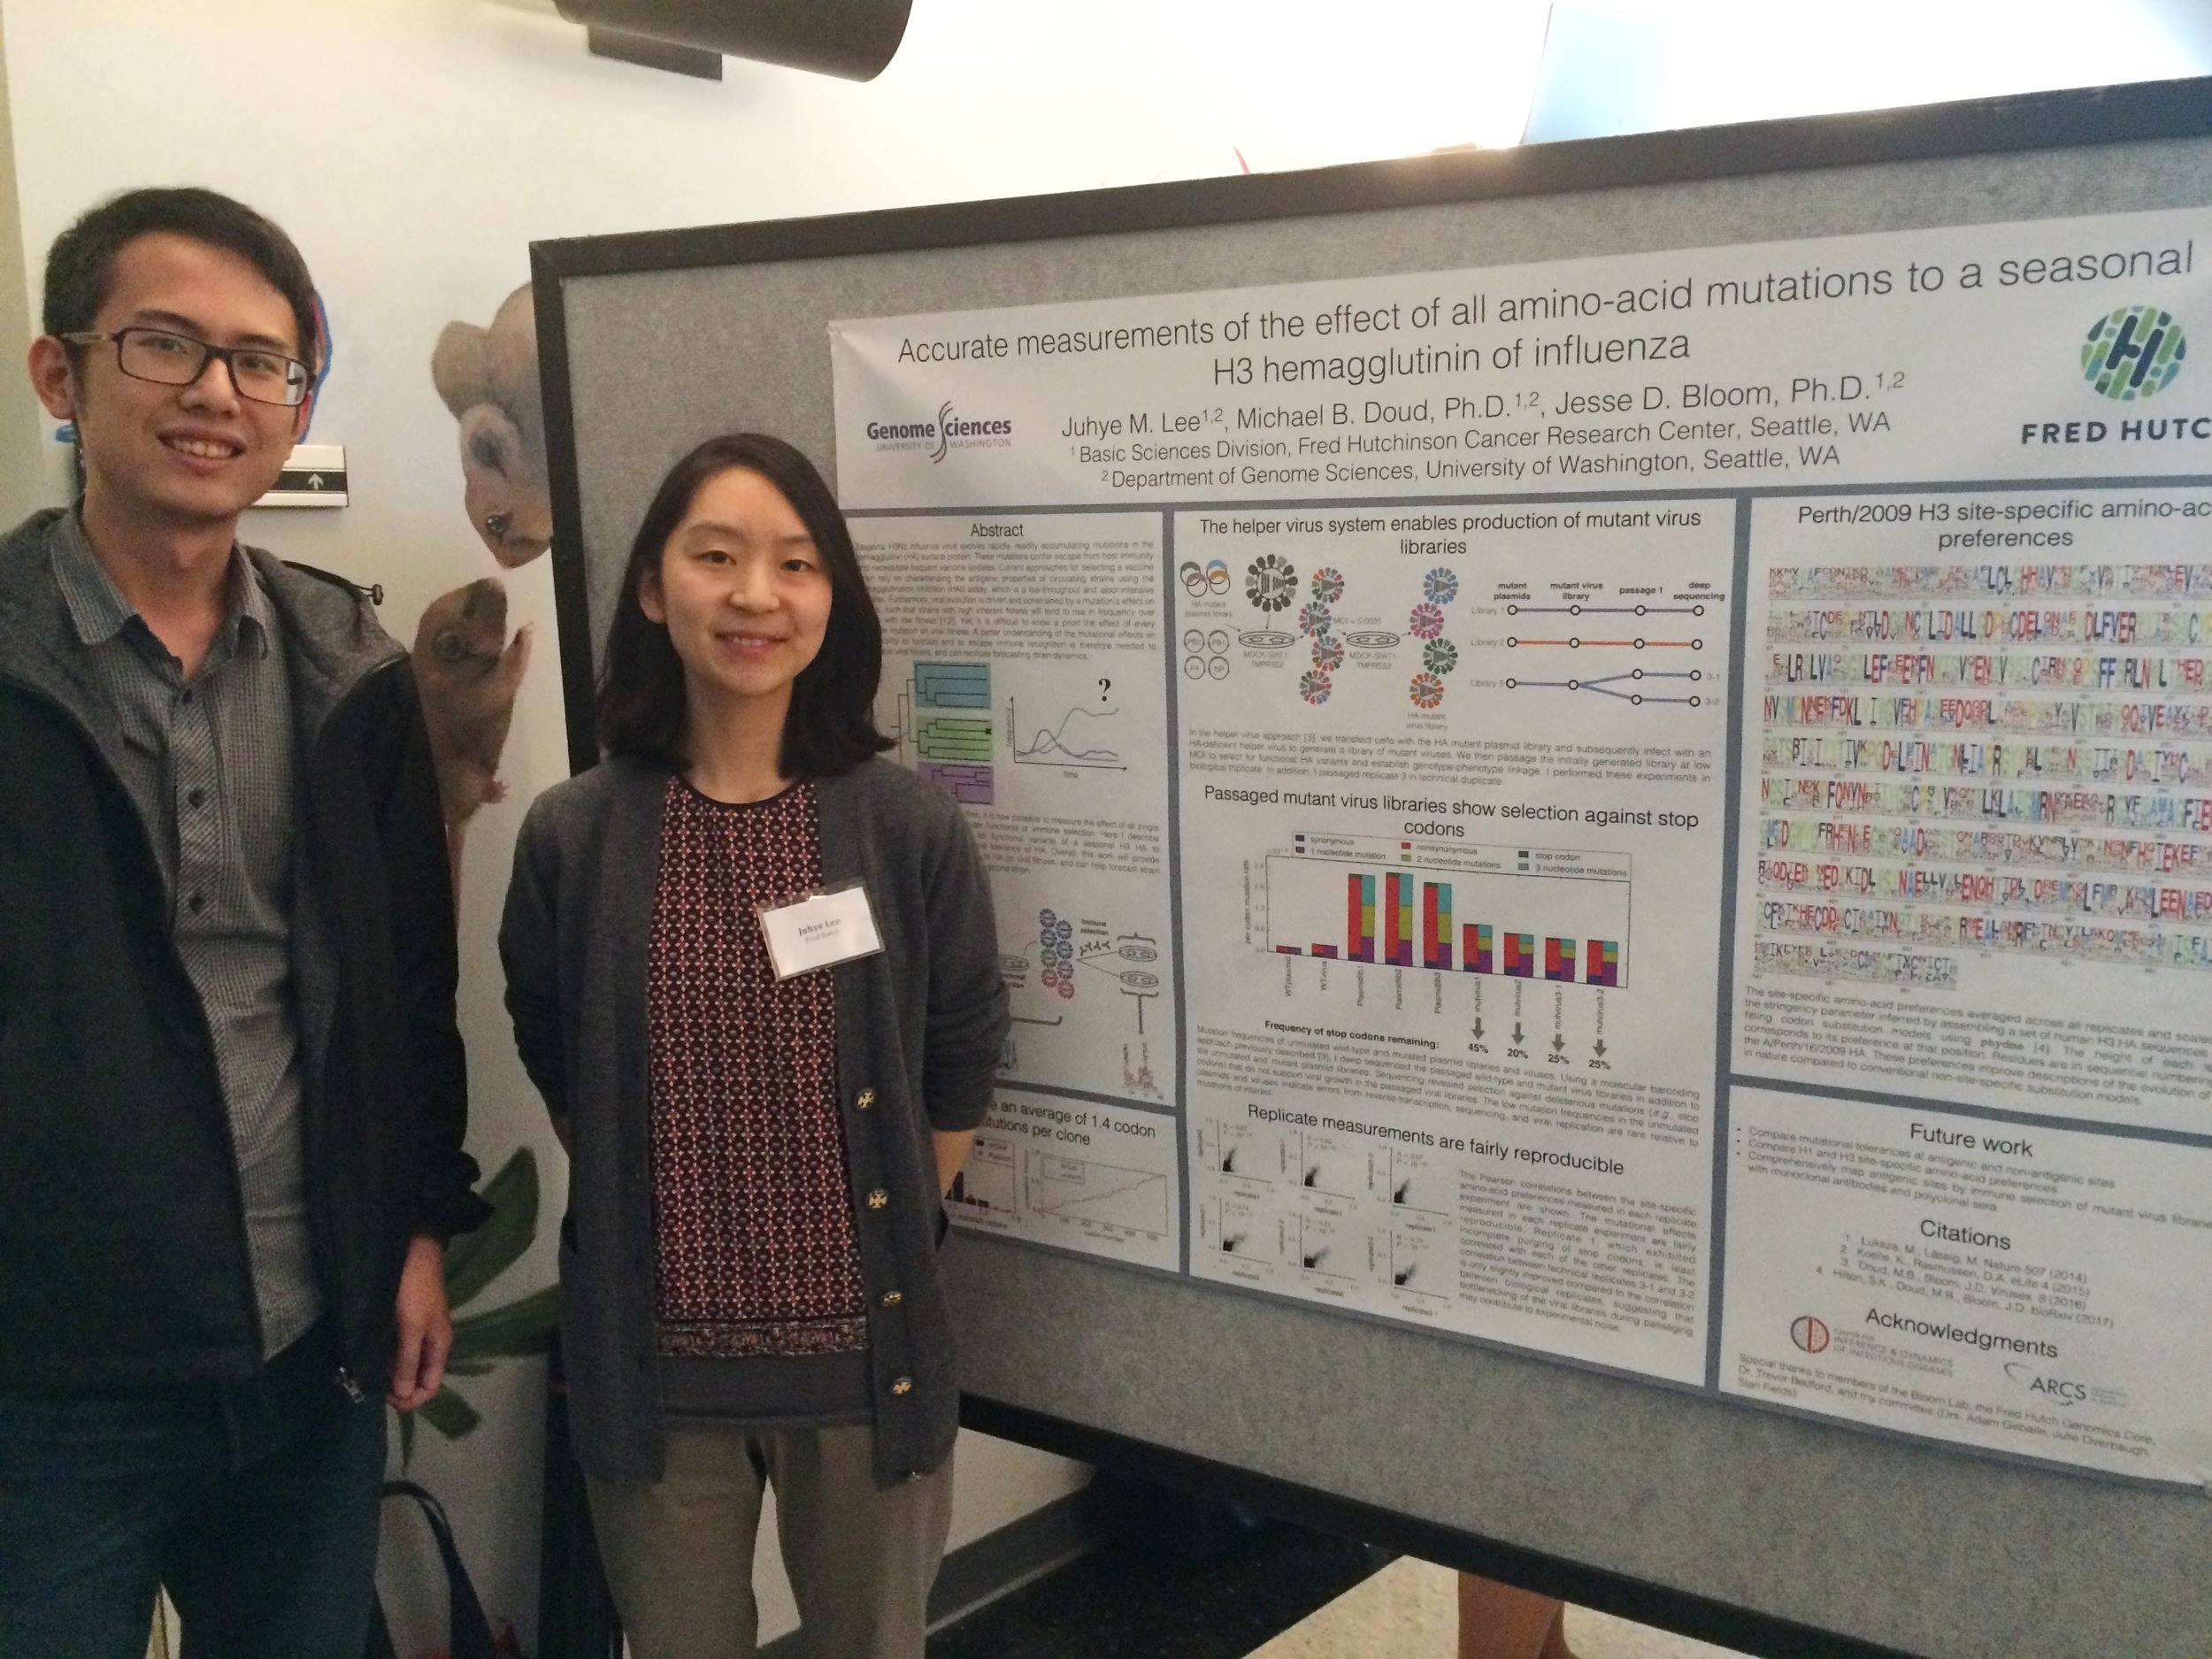 Juhye Lee (Fred Hutch/University of Washington) discussing her poster with Tim Tsang (University of Florida).